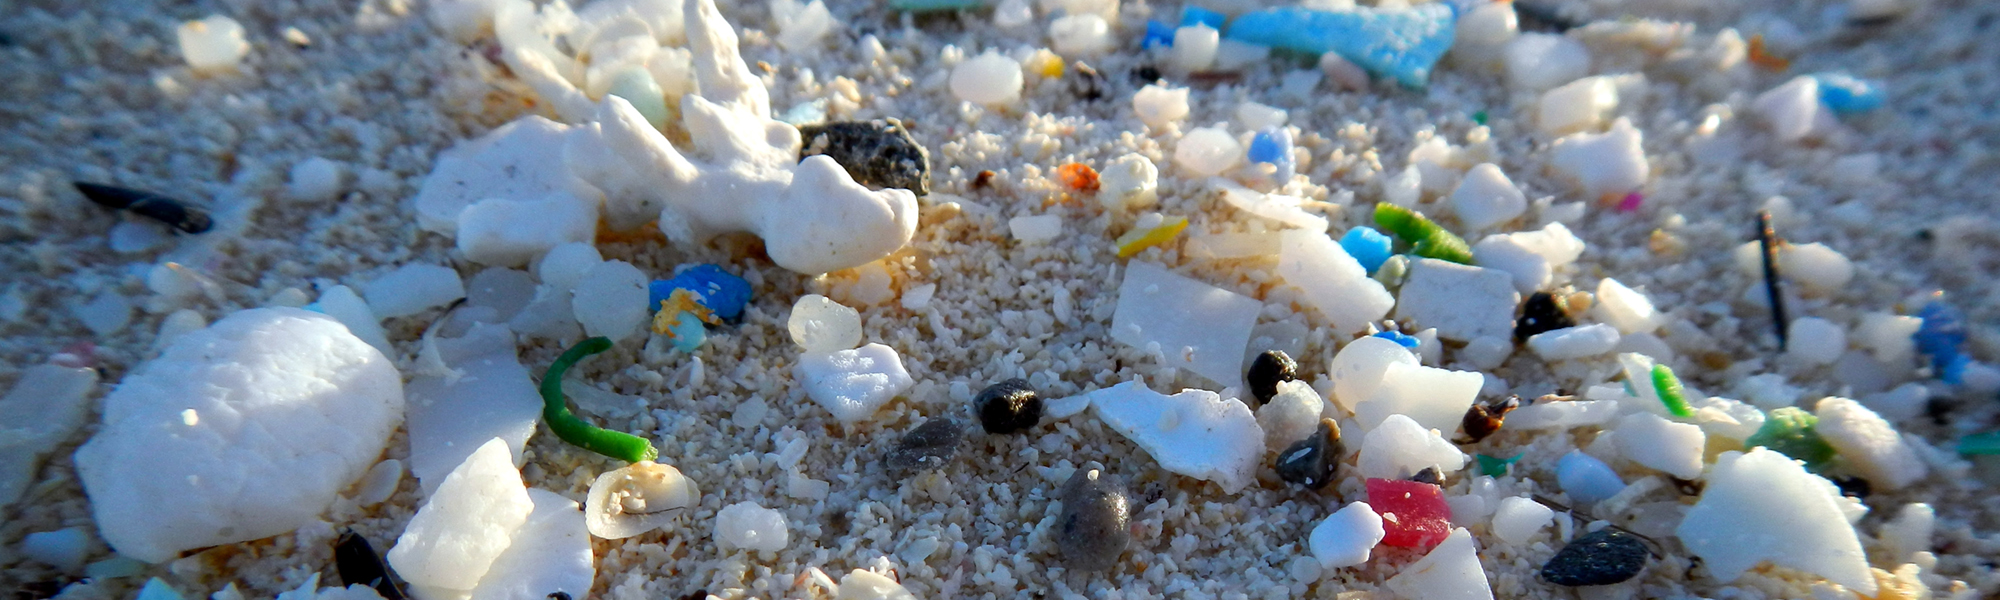 microplastics on a beach